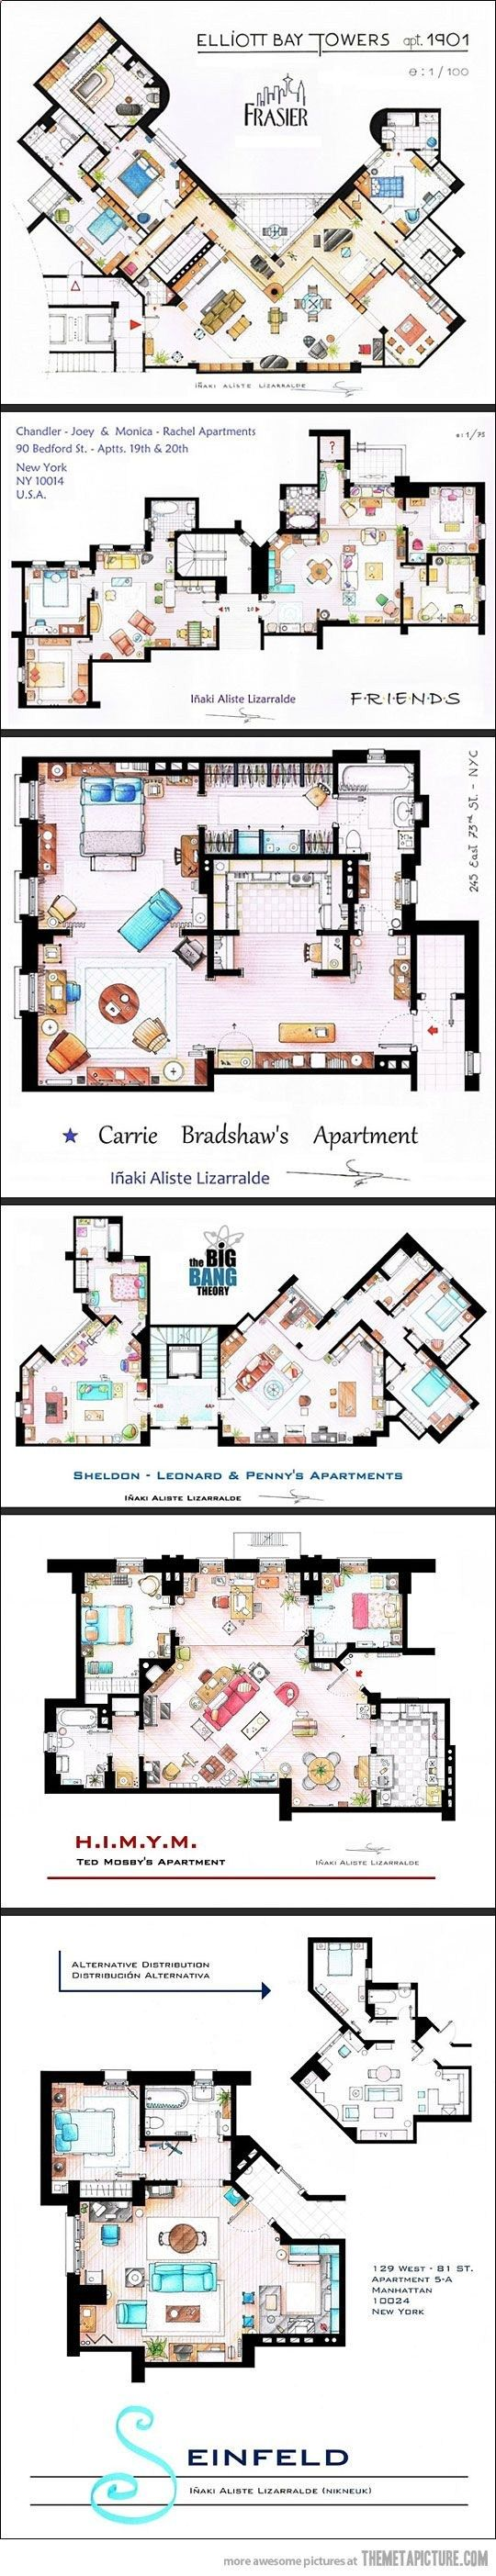 Floor plans from TV series: Seinfeld, HIMYM, The Big Bang Theory, F.R.I.E.N.D.S. Sex and the City, Frasier